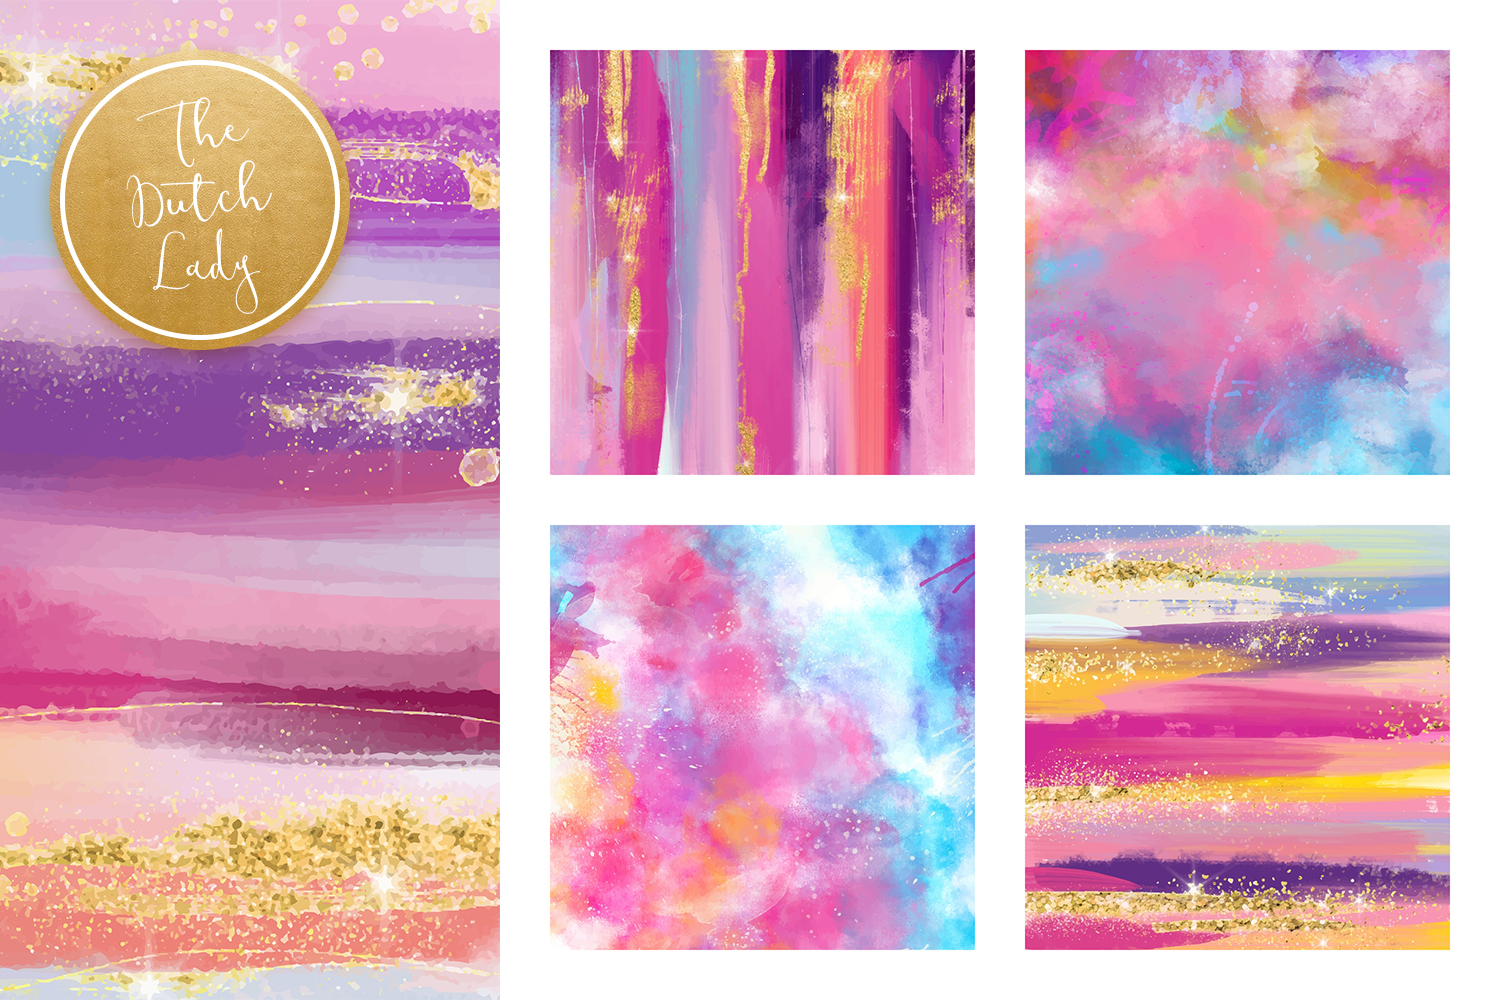 Colorful Brush Strokes & Stains Background Textures example image 3